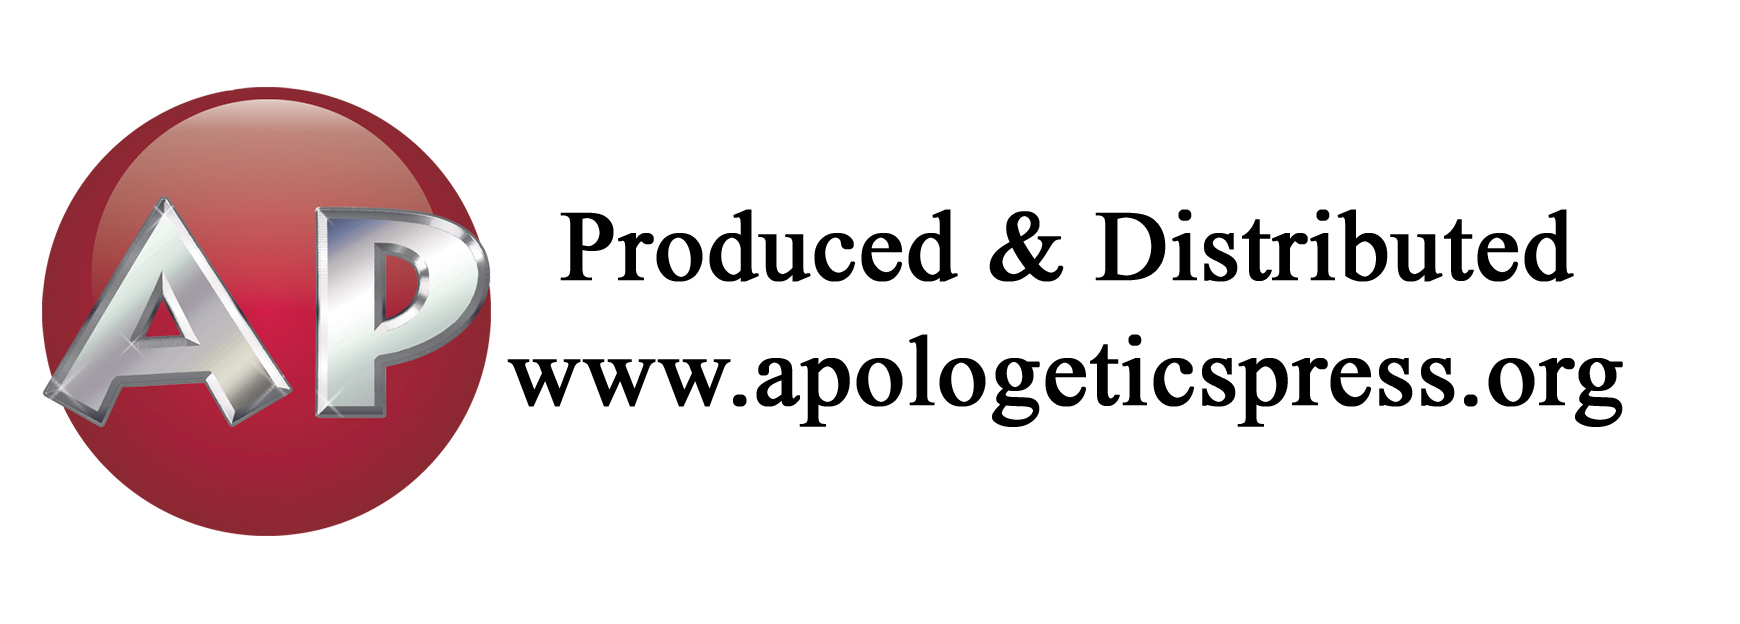 apologeticspress.org